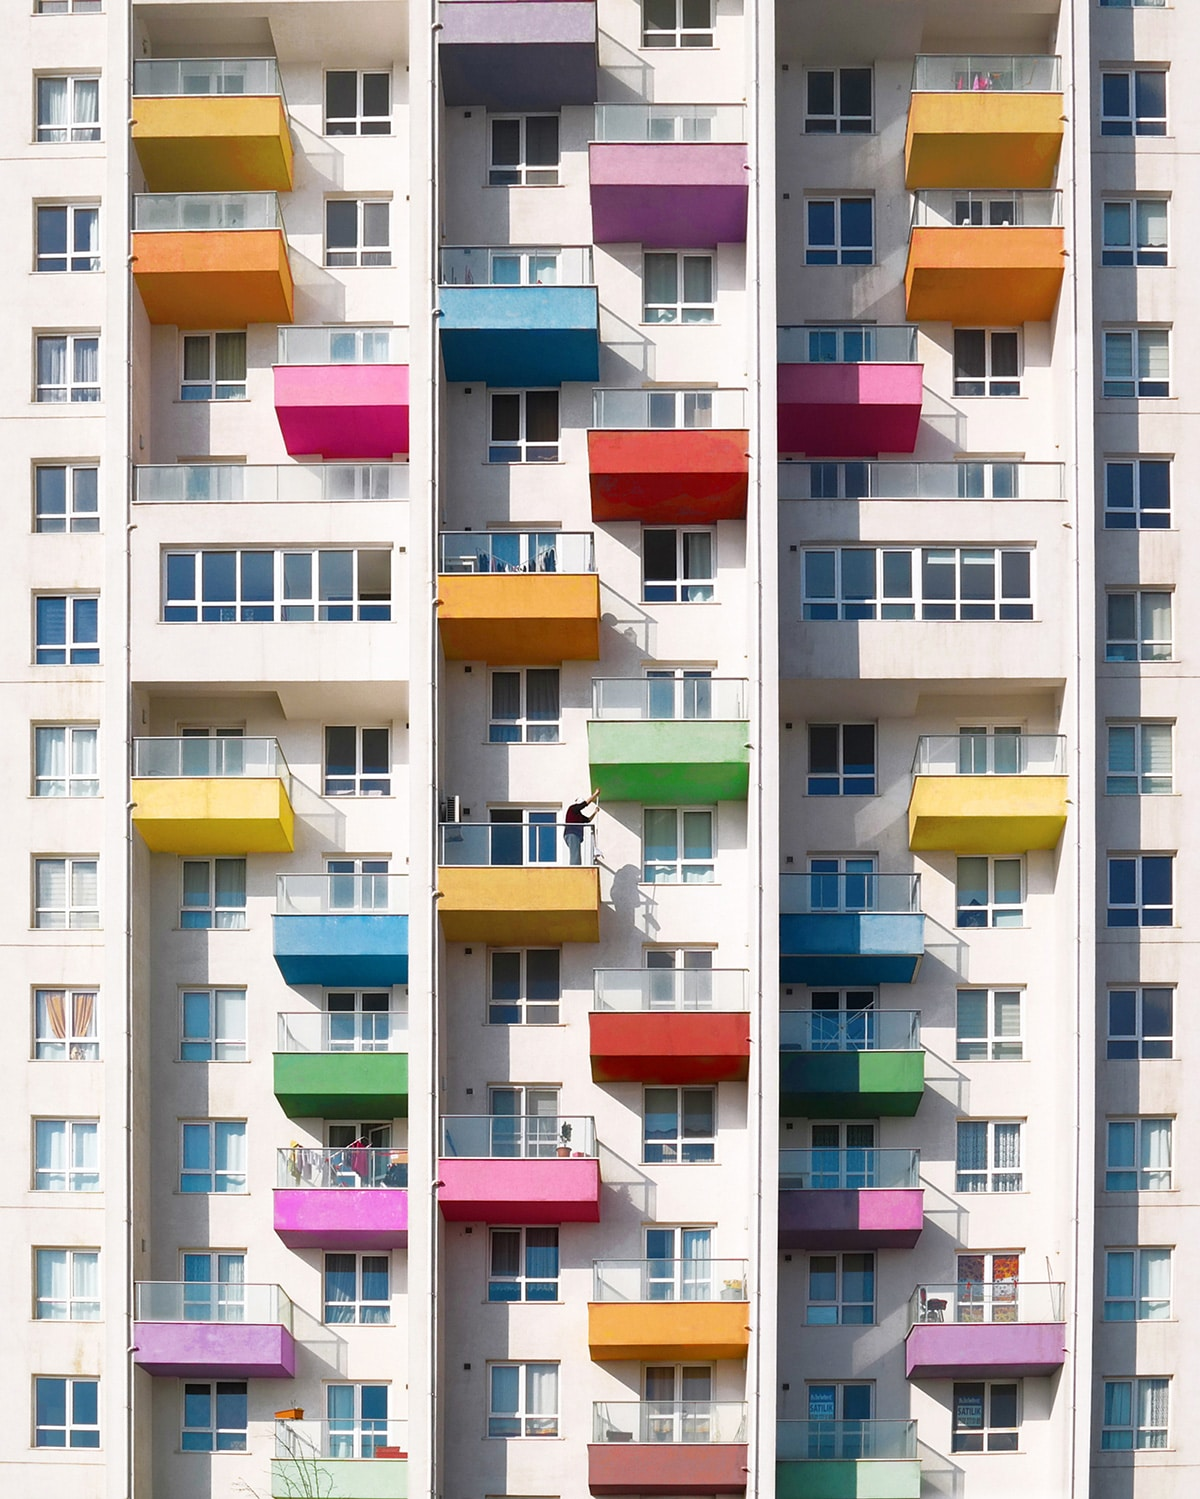 Architectural Photo with Colorful Balconies